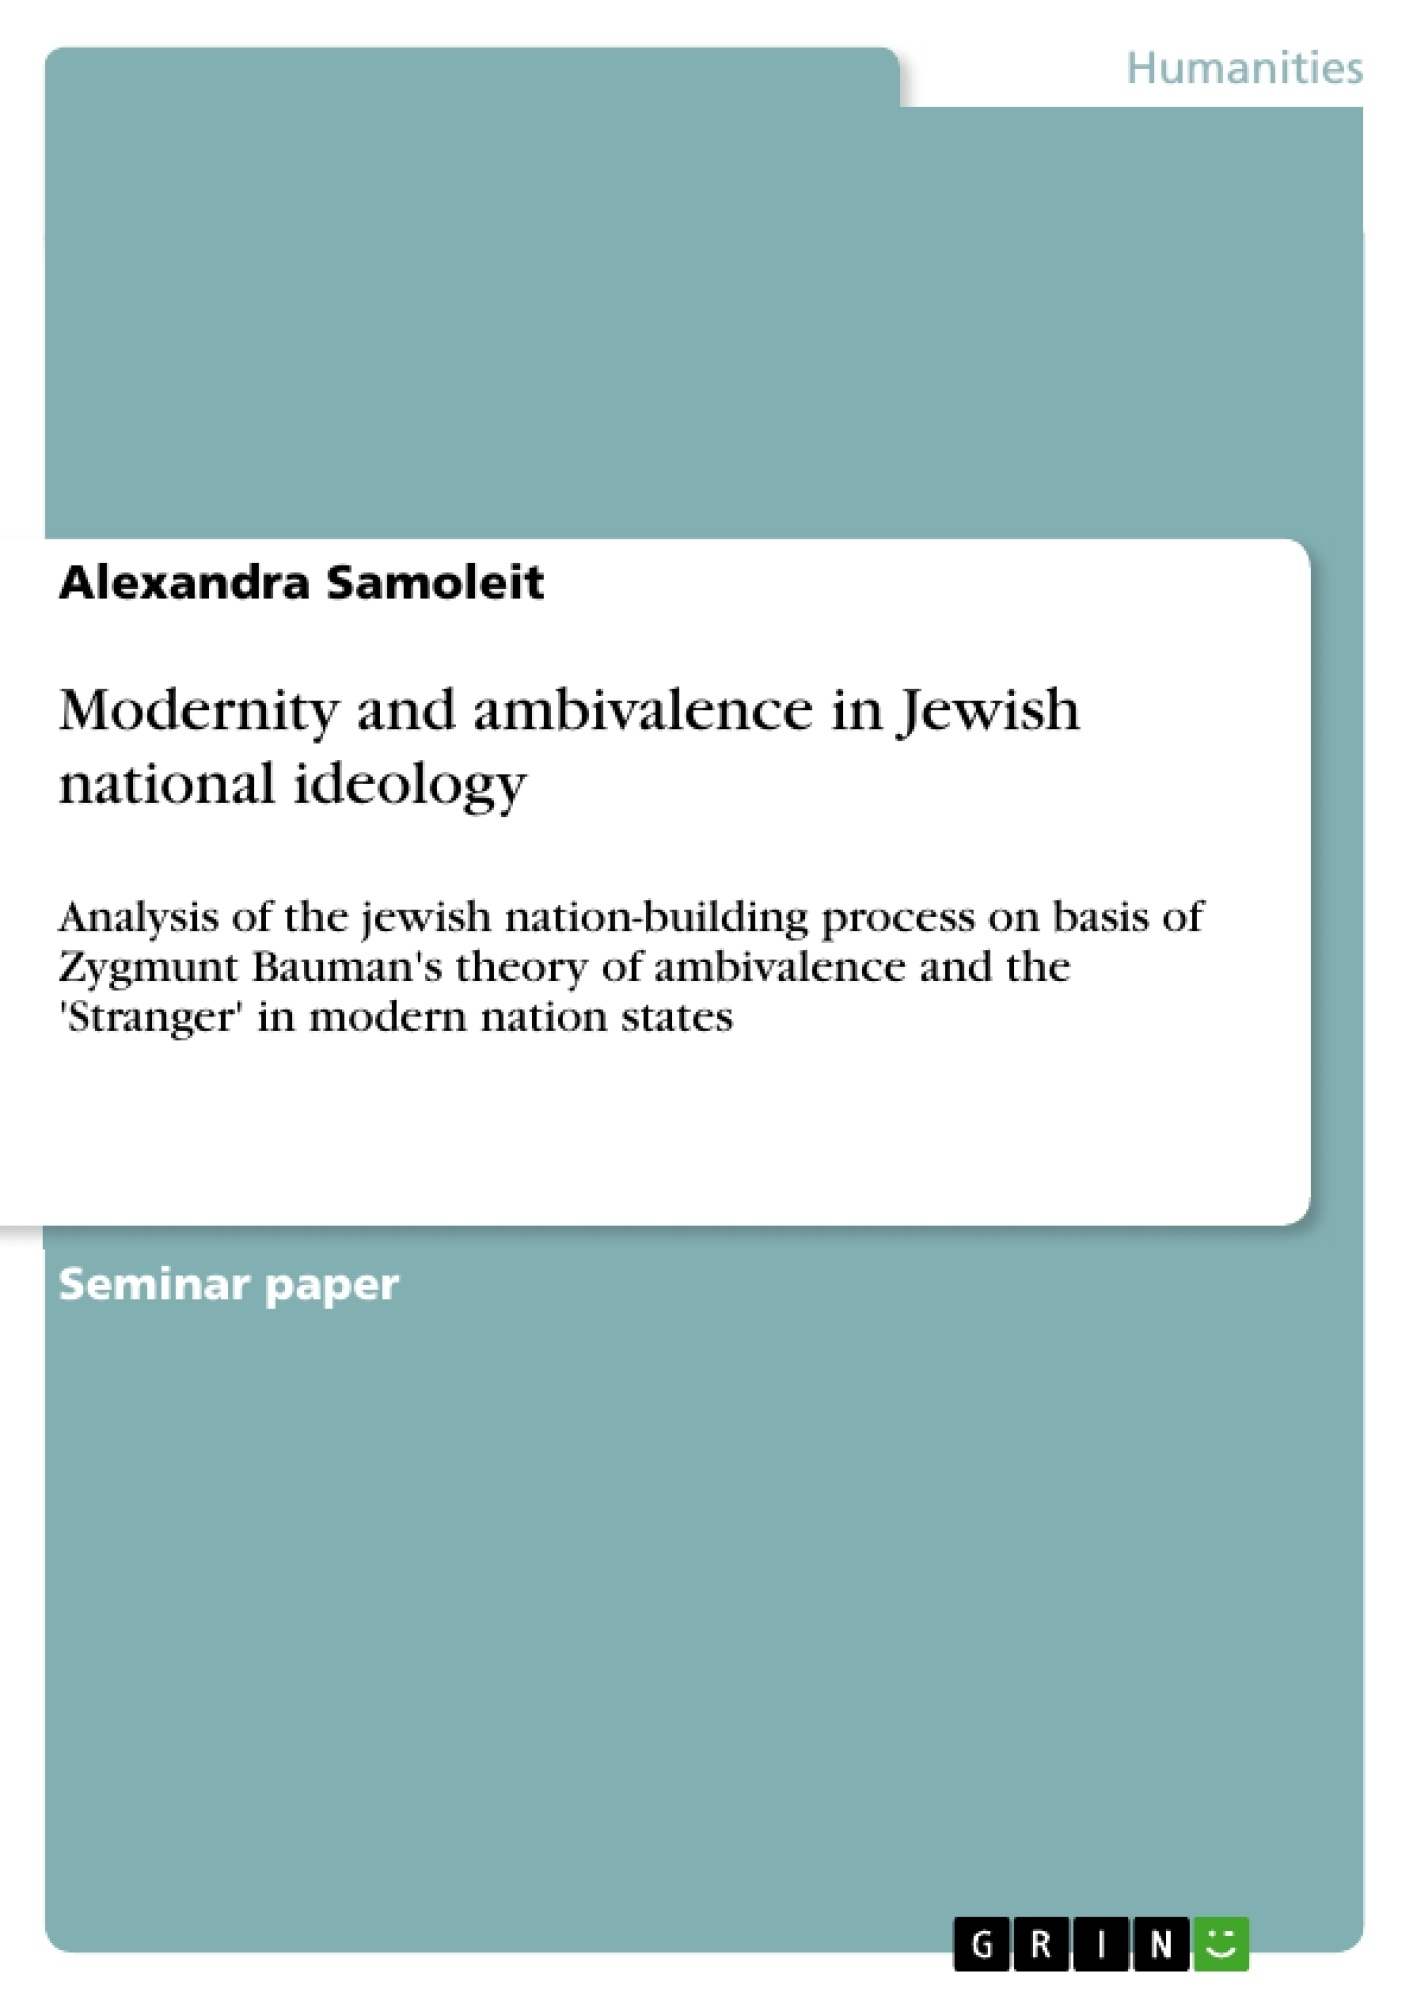 Title: Modernity and ambivalence in Jewish national ideology